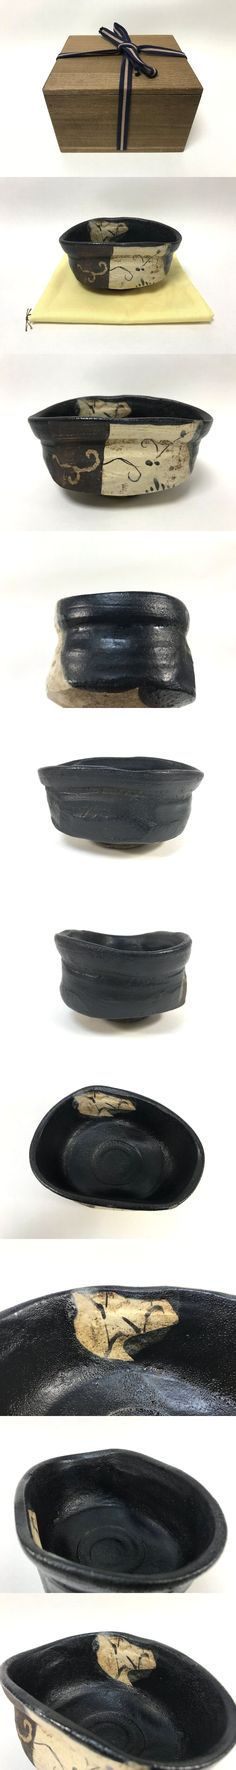 Buyee - Bid for '【宝】茶道具・味わいのある黒織部沓形茶碗・桐箱付, Oribe, Mino, Japanese Pottery' directly on Yahoo! Japan Auctions in real-time and buy from outside Japan!